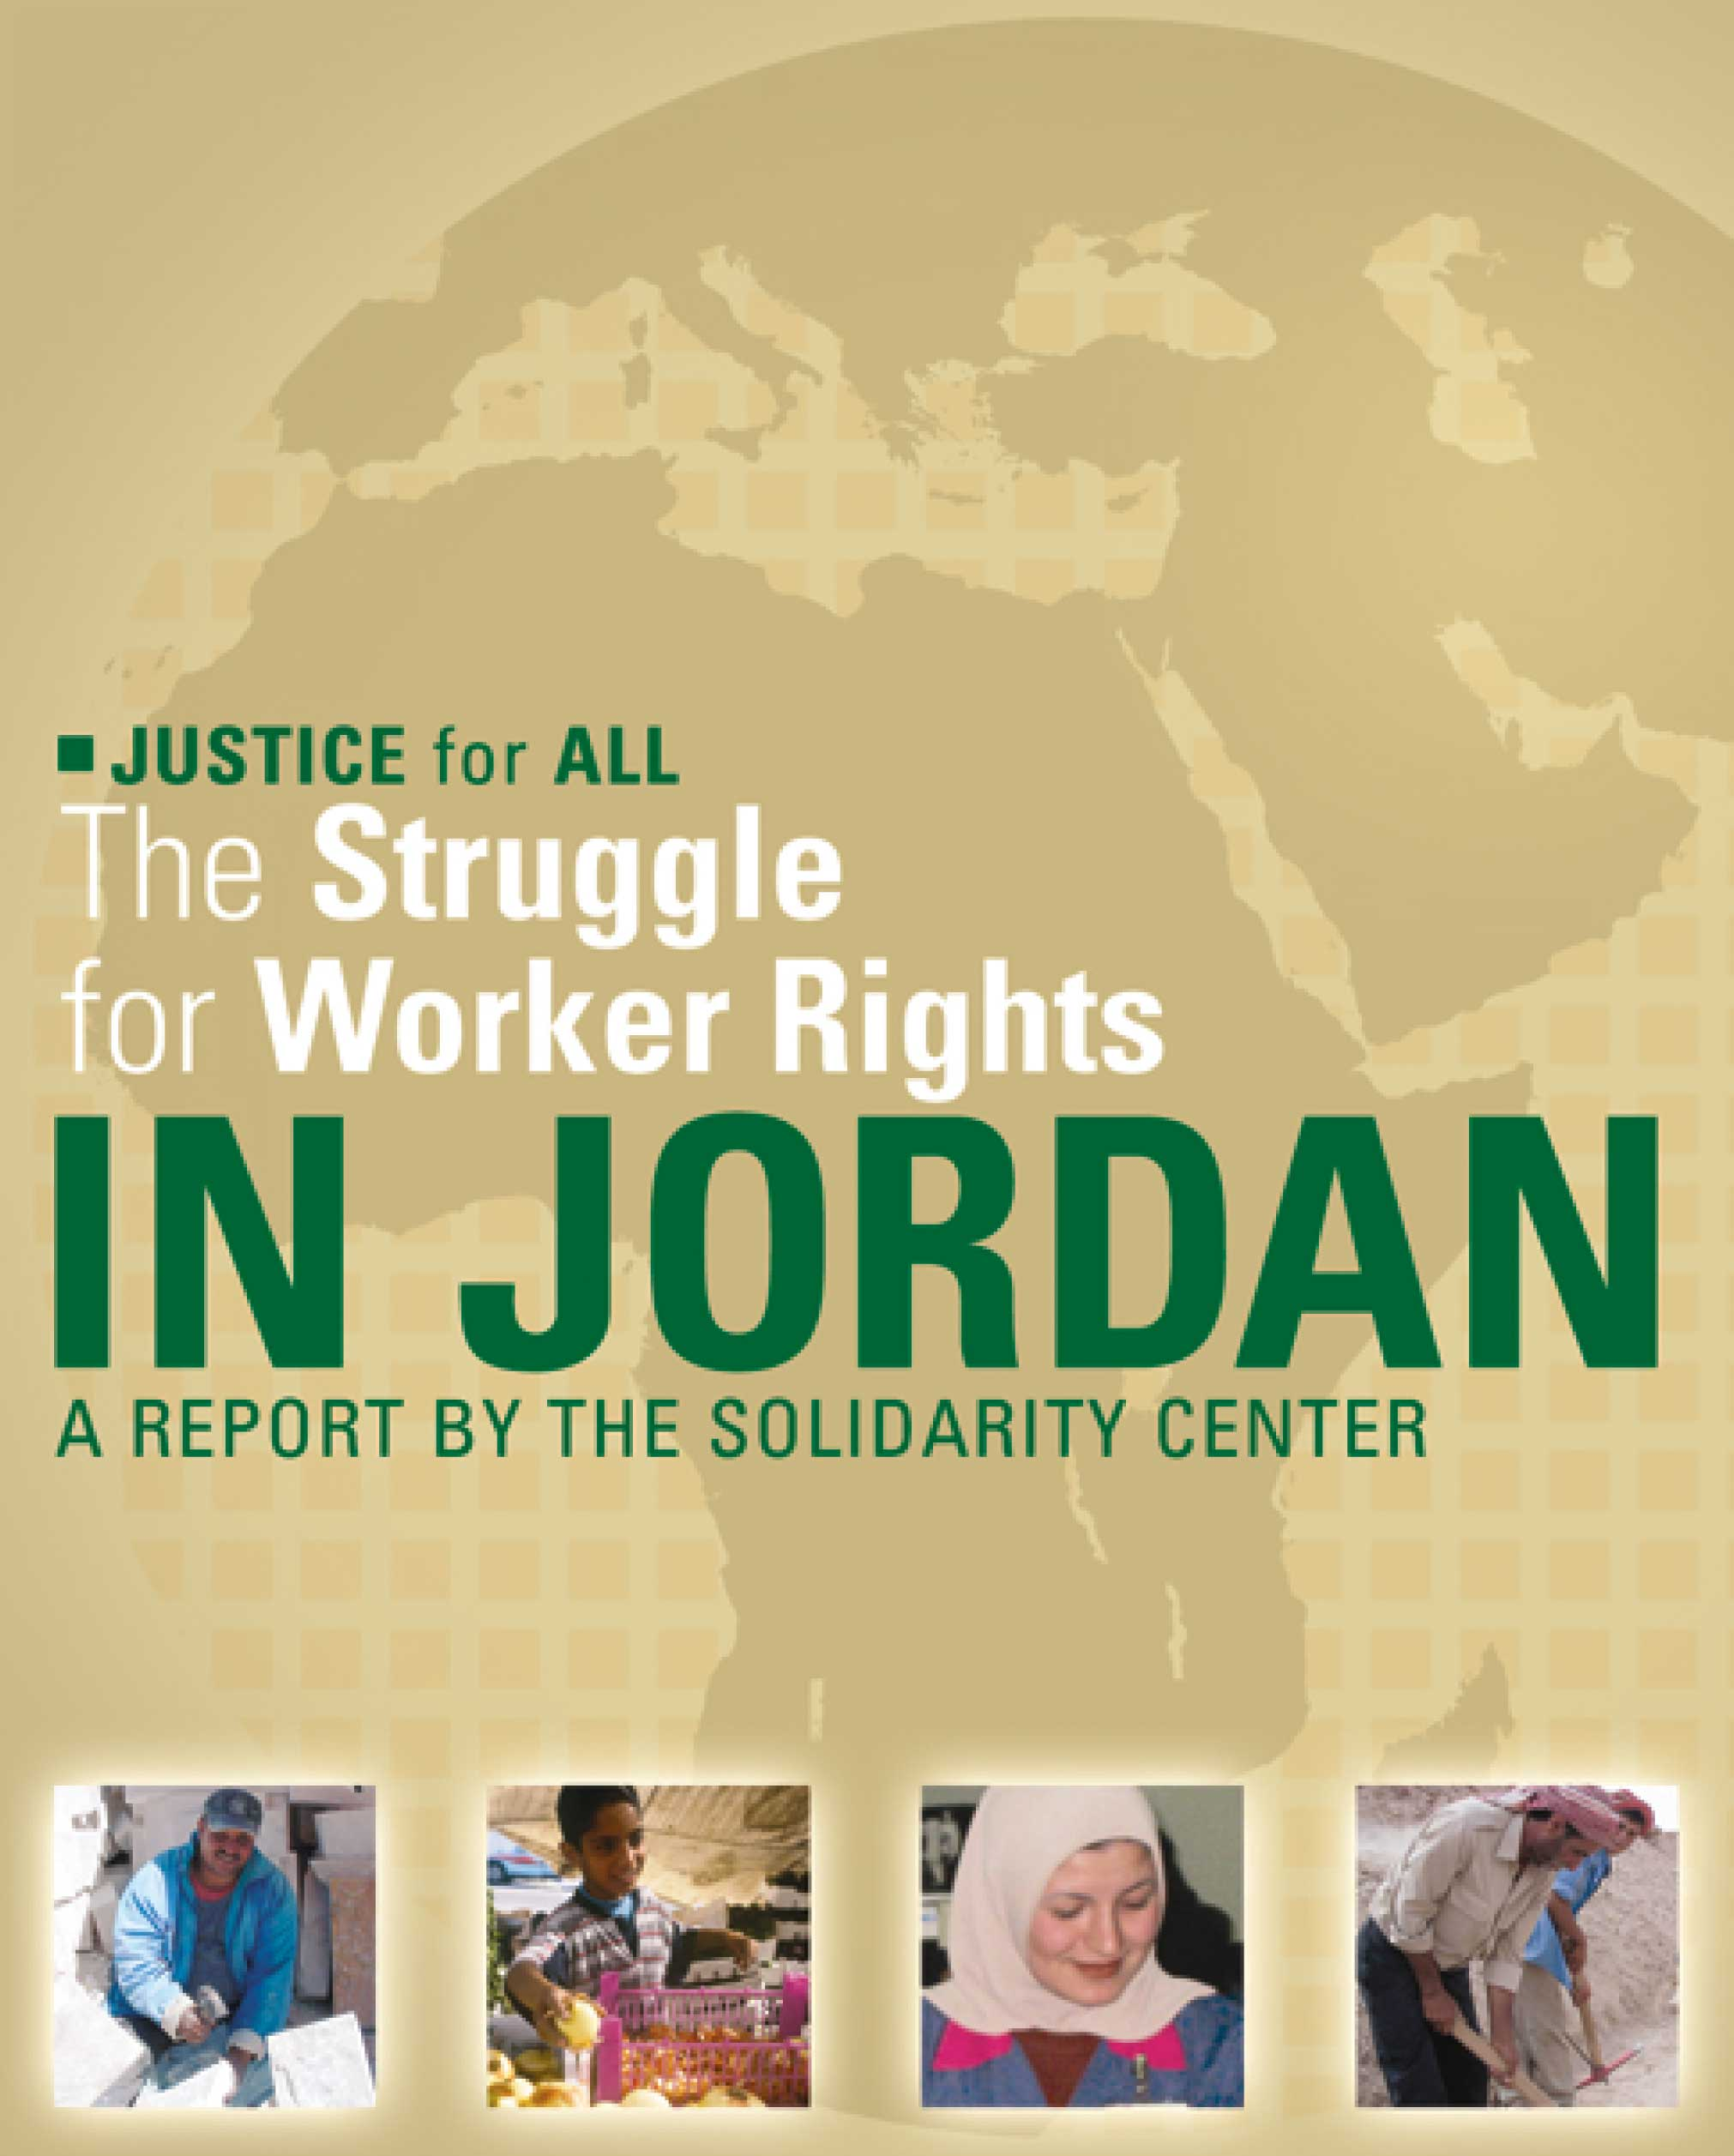 The struggle for worker's rights in Jordan report poster